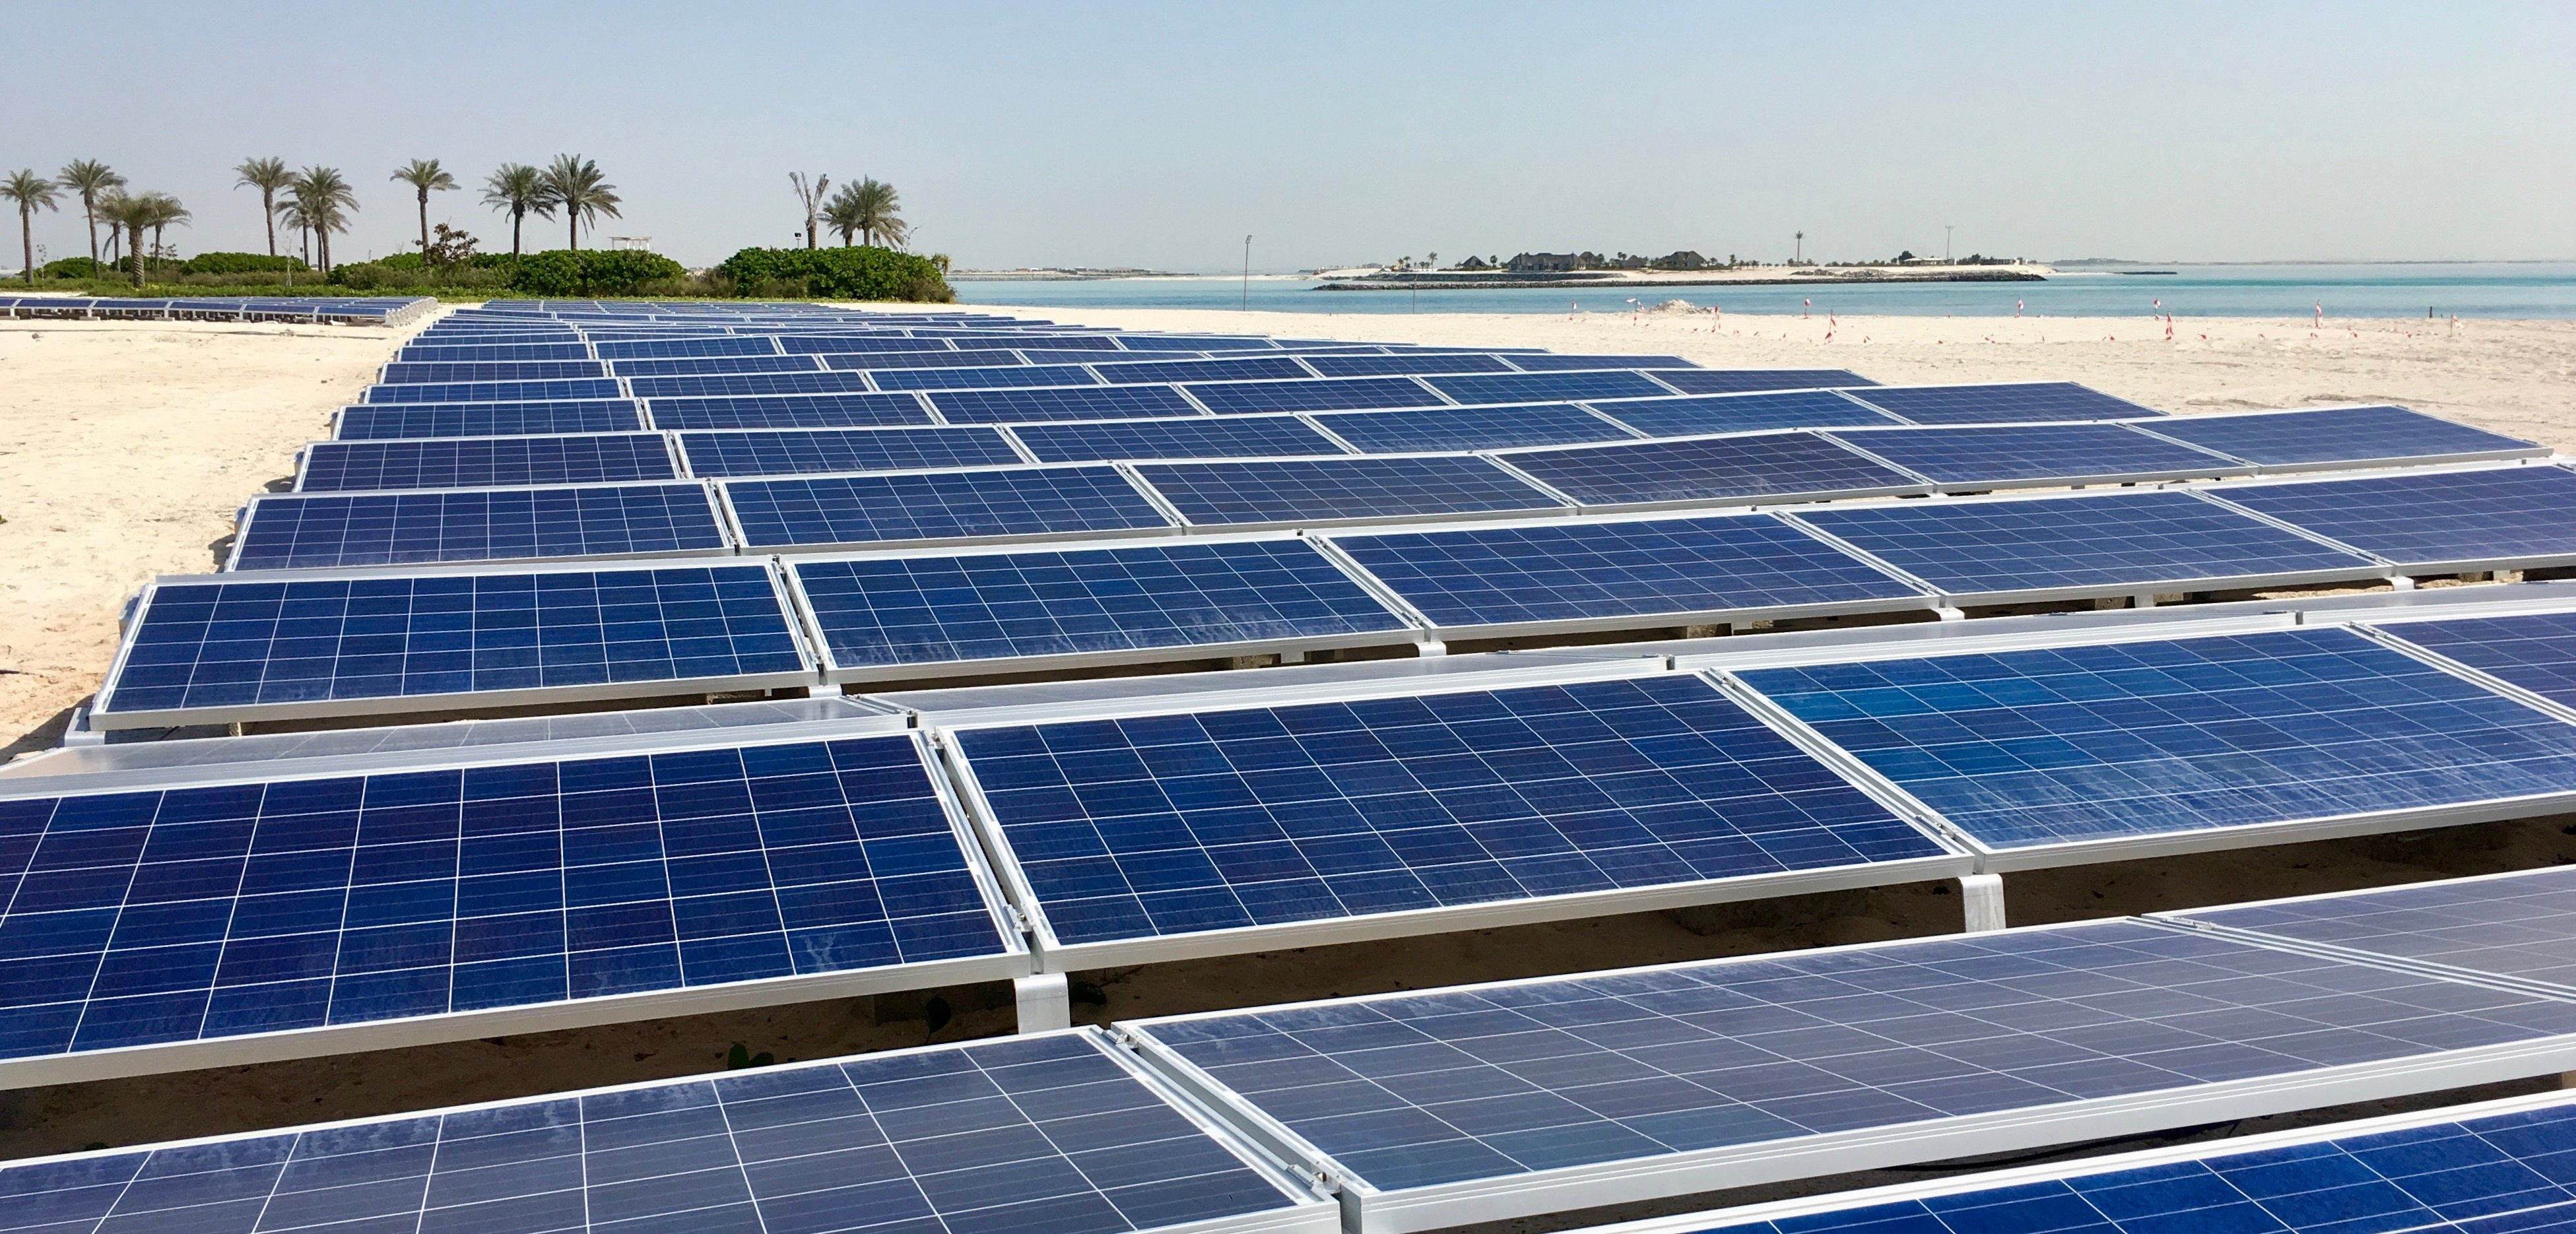 Even Oil-Producing Countries Are Going Solar